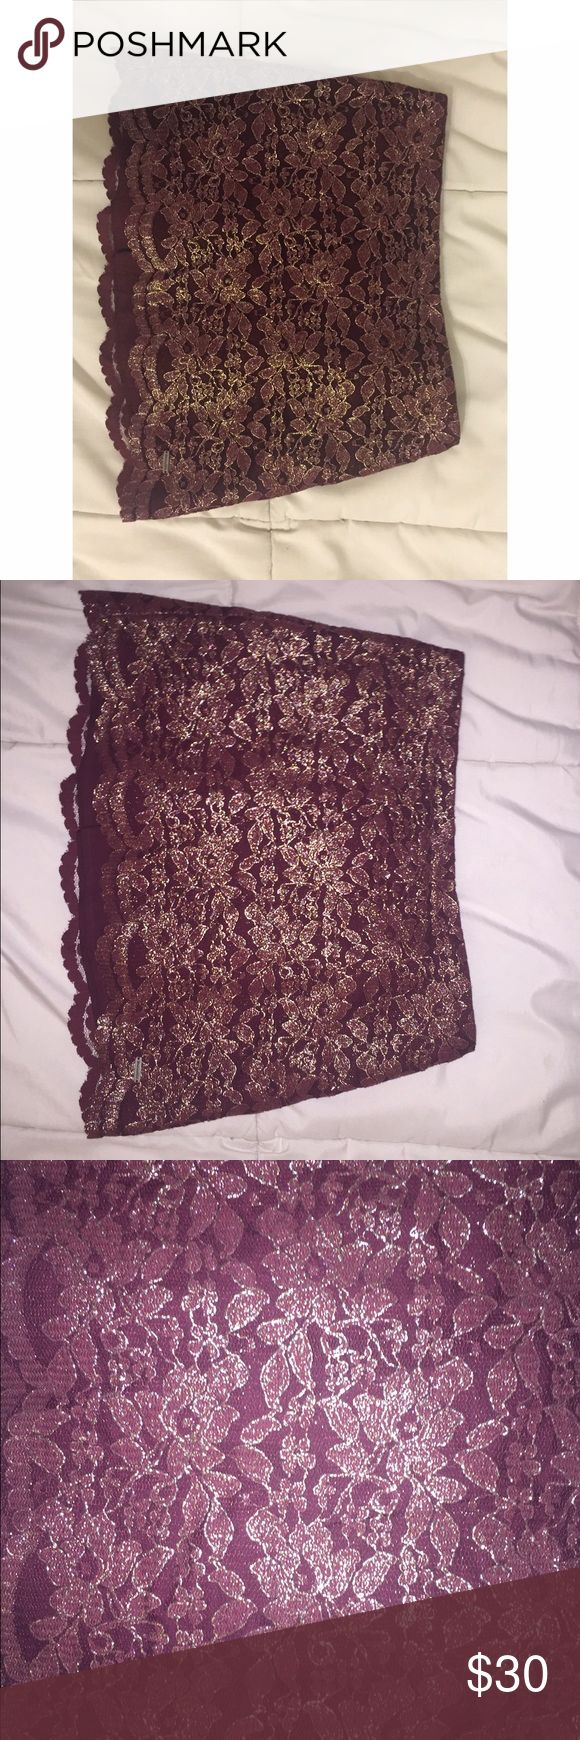 Abercrombie and Fitch mini skirt I am selling my Abercrombie maroon and gold lace mini skirt. Great for a going out look. It's been worn before, but not in many many years. It's still great condition. Feel free to make me an offer✨ Abercrombie & Fitch Skirts Mini